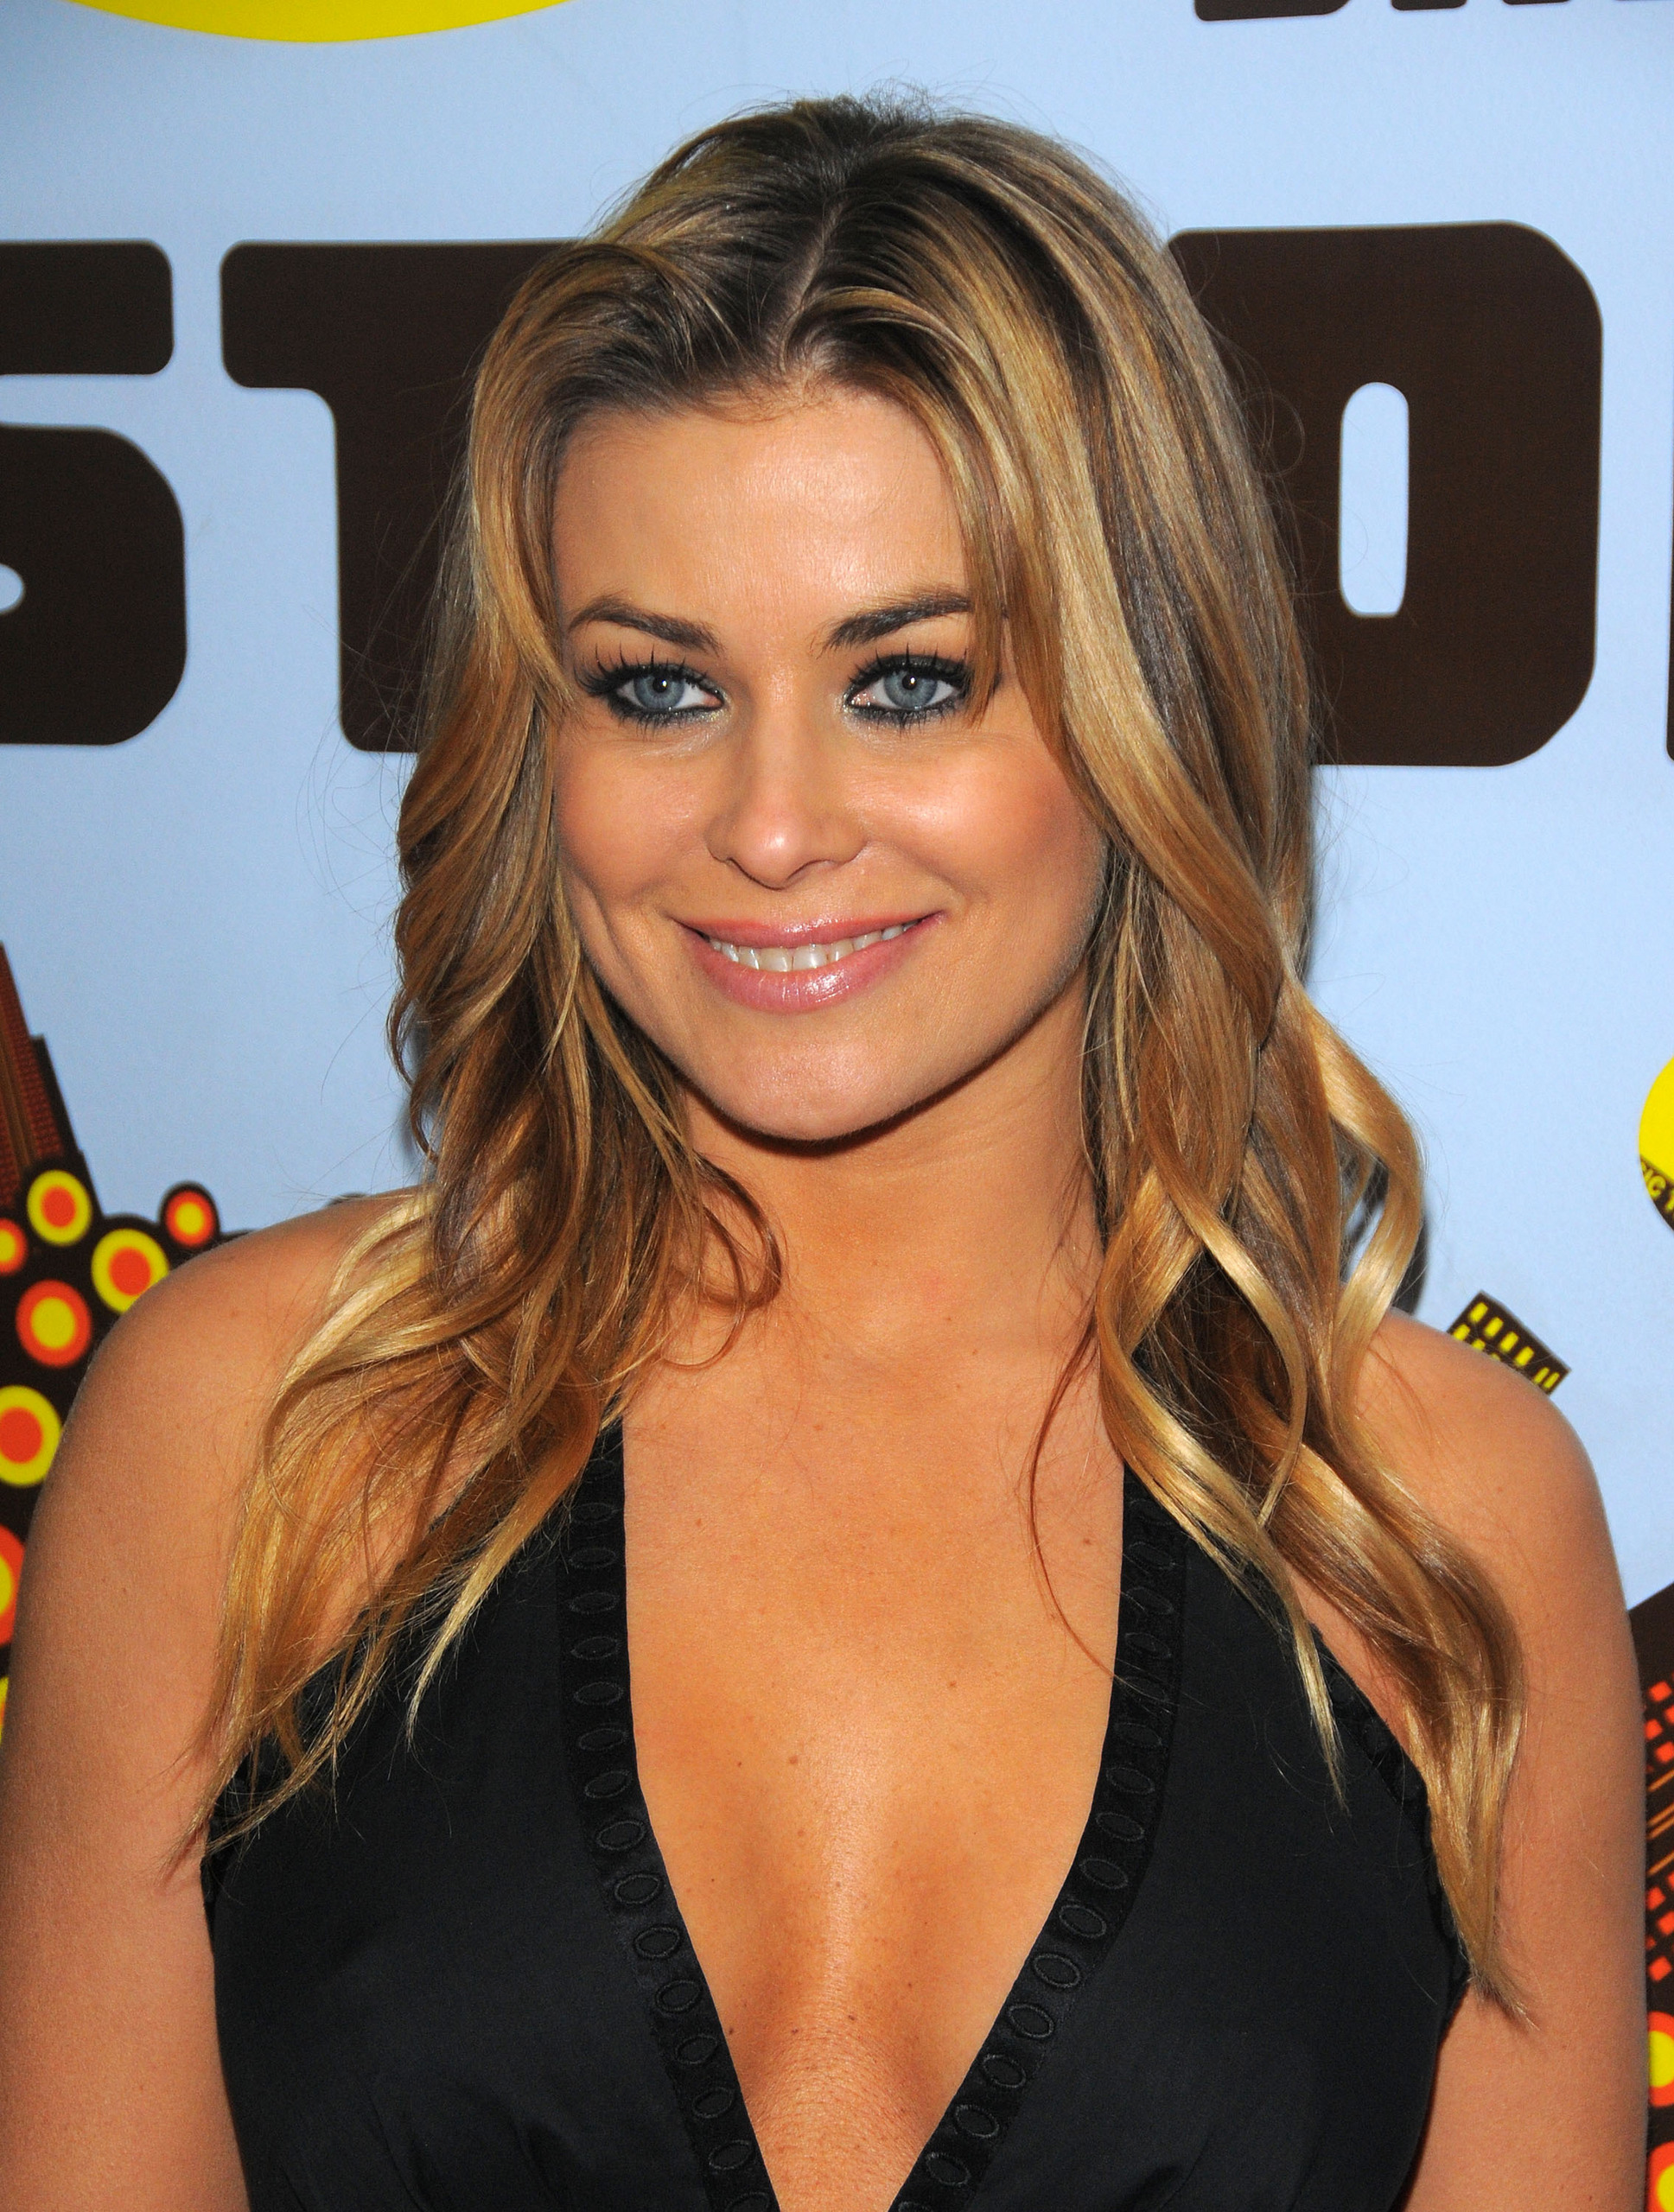 Carmen - Mix - Carmen Electra Photo (29340357) - Fanpop